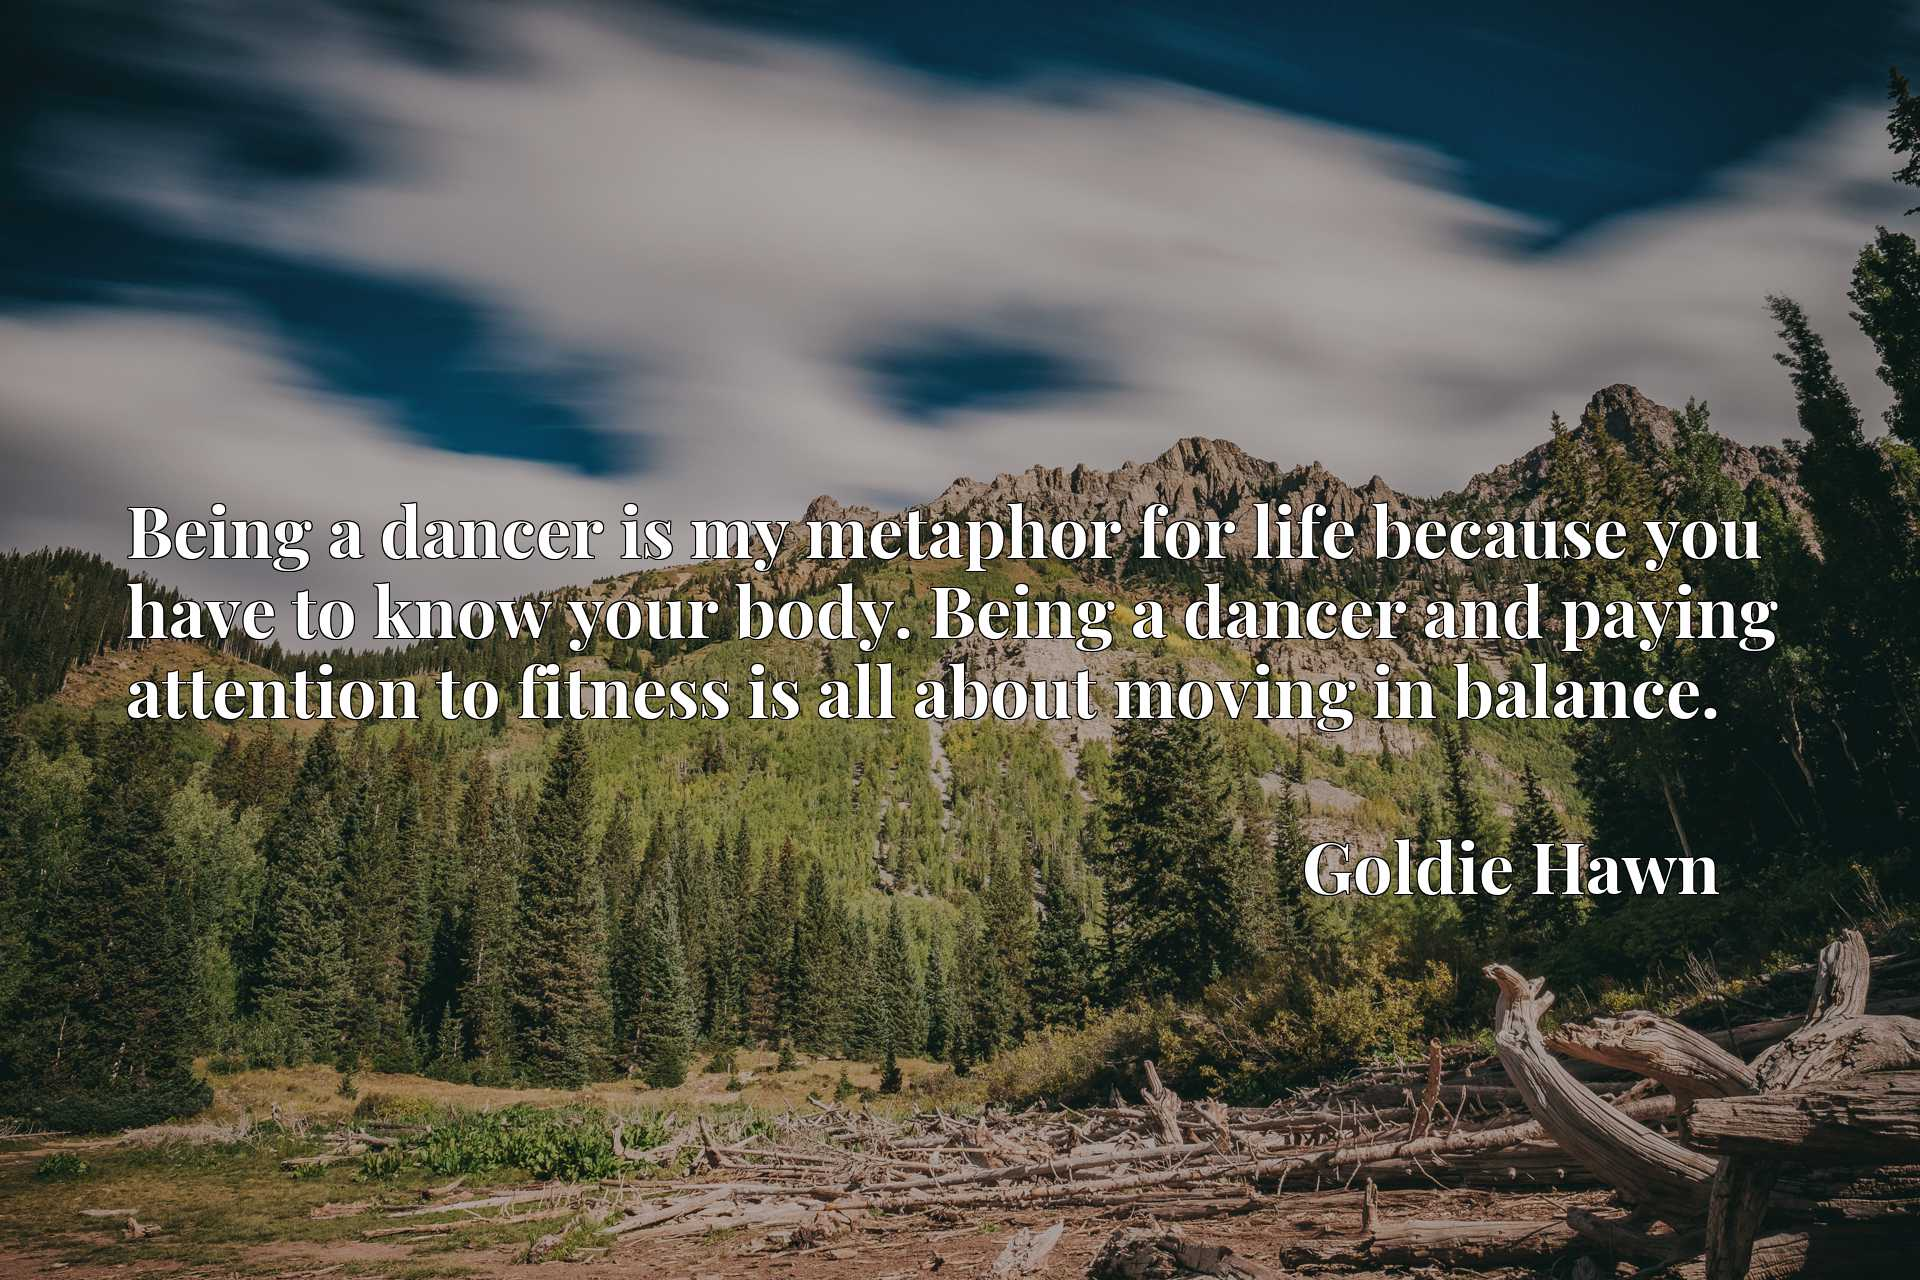 Being a dancer is my metaphor for life because you have to know your body. Being a dancer and paying attention to fitness is all about moving in balance.